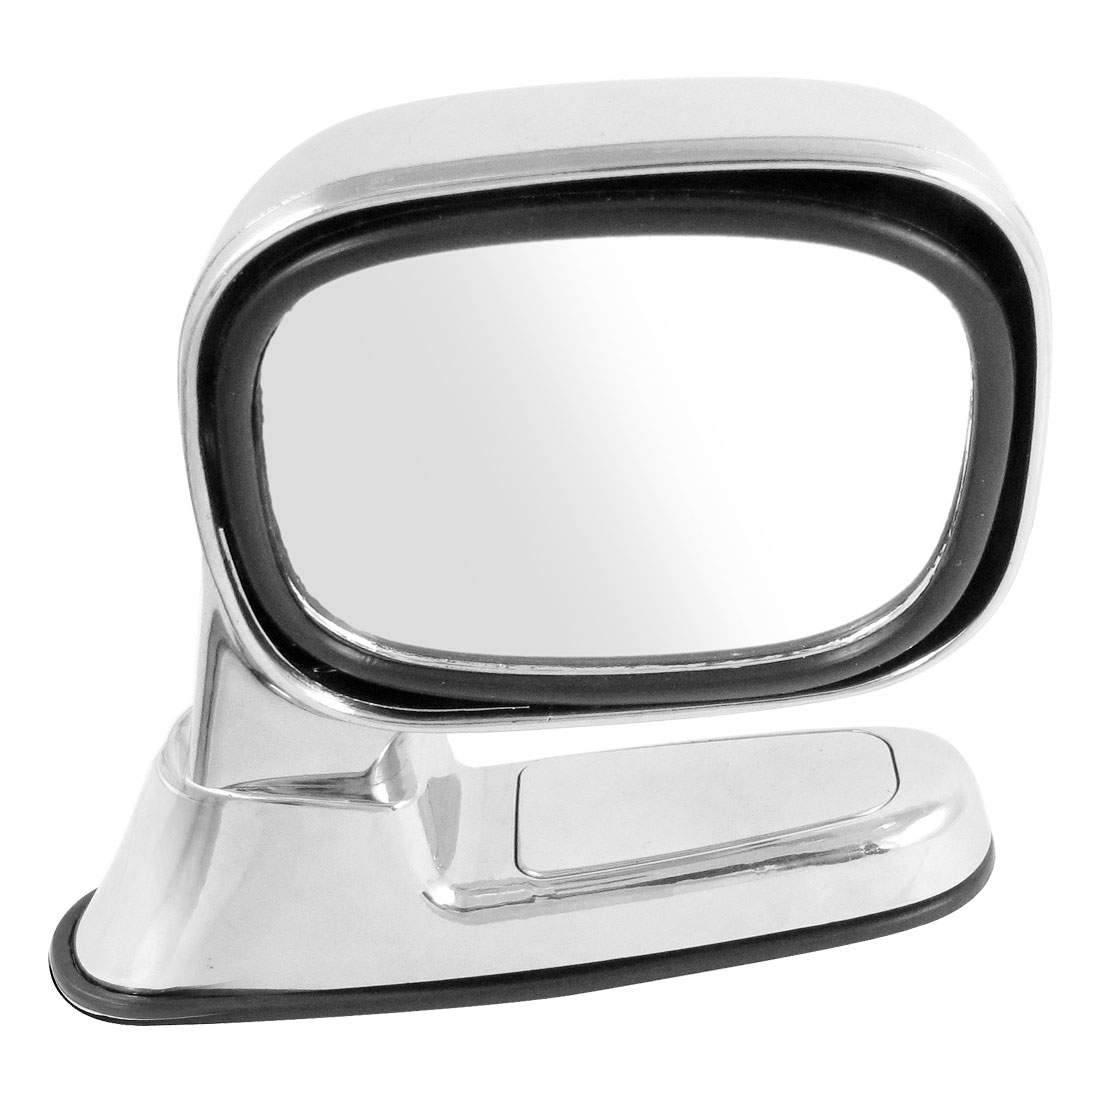 Auto Car Silver Tone Plastic Shell Right Side Assistant Rear View Mirror